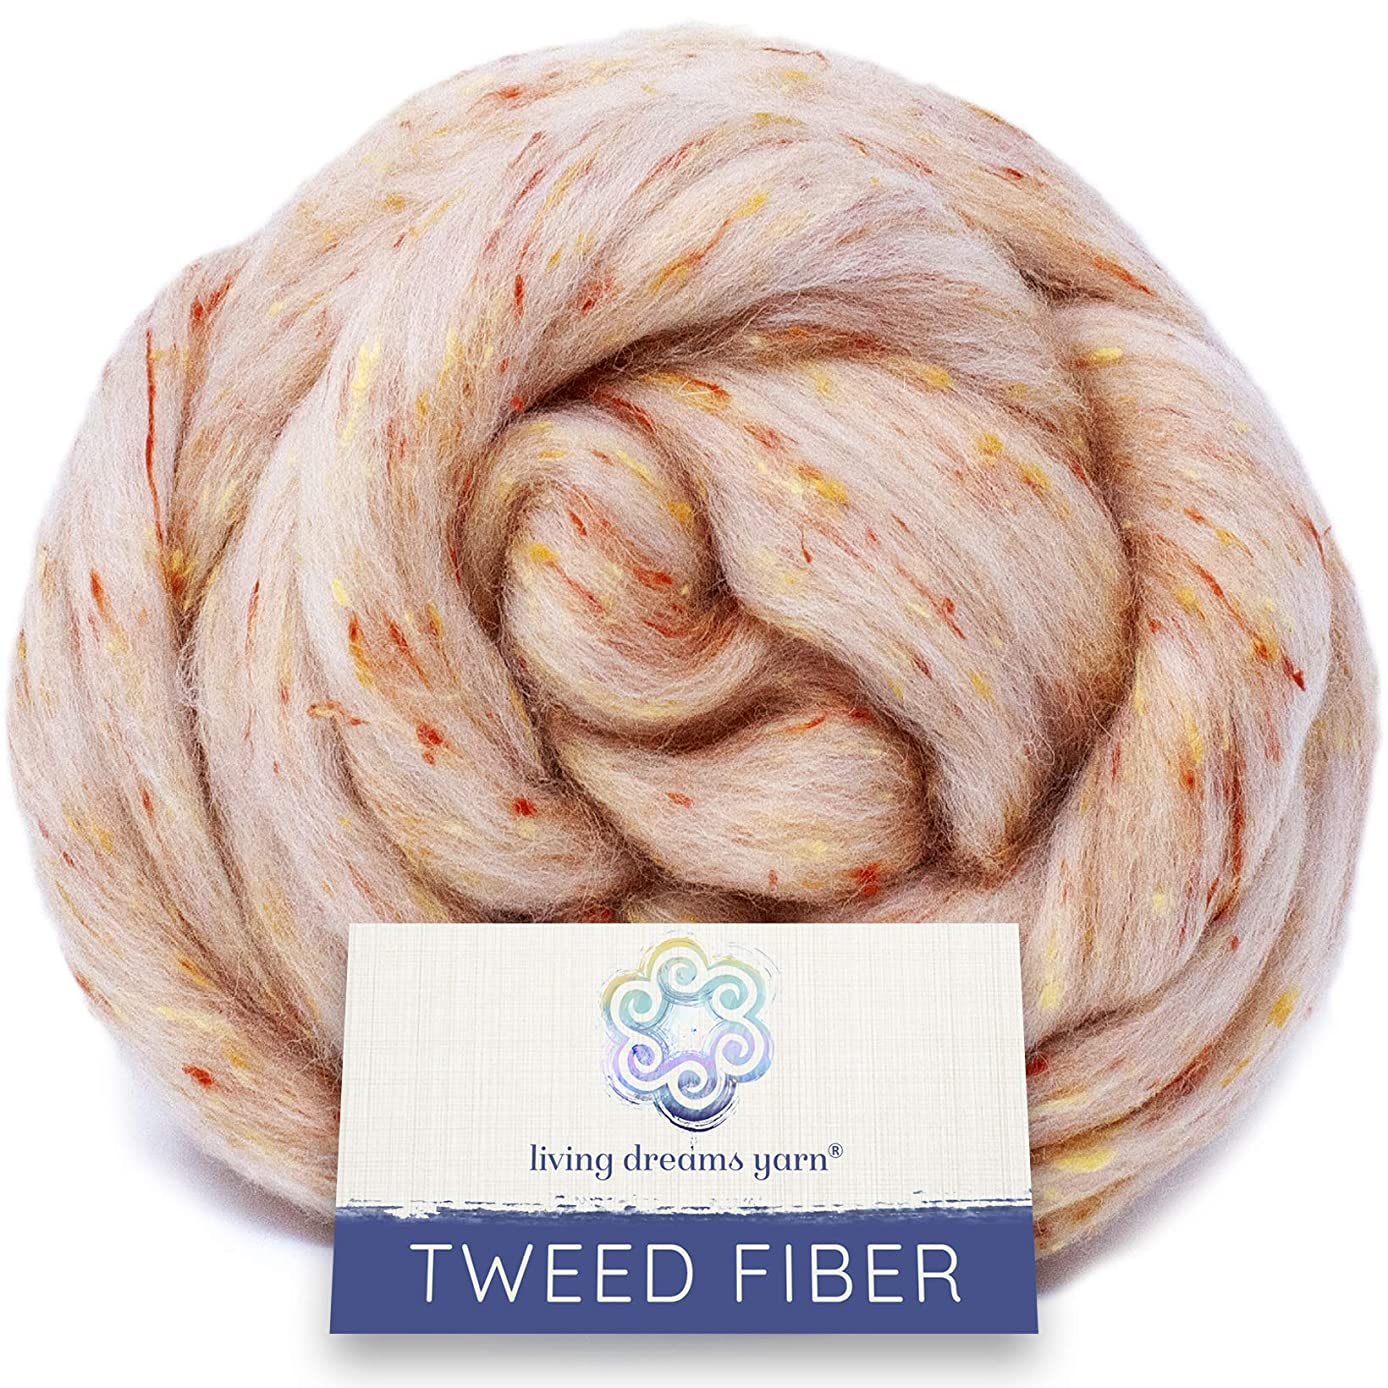 Tweed Effect Fiber for Spinning, Felting, Blending and Dyeing. Super Soft Wool & Viscose Blend. Combed Top Roving. Beatrix Potter